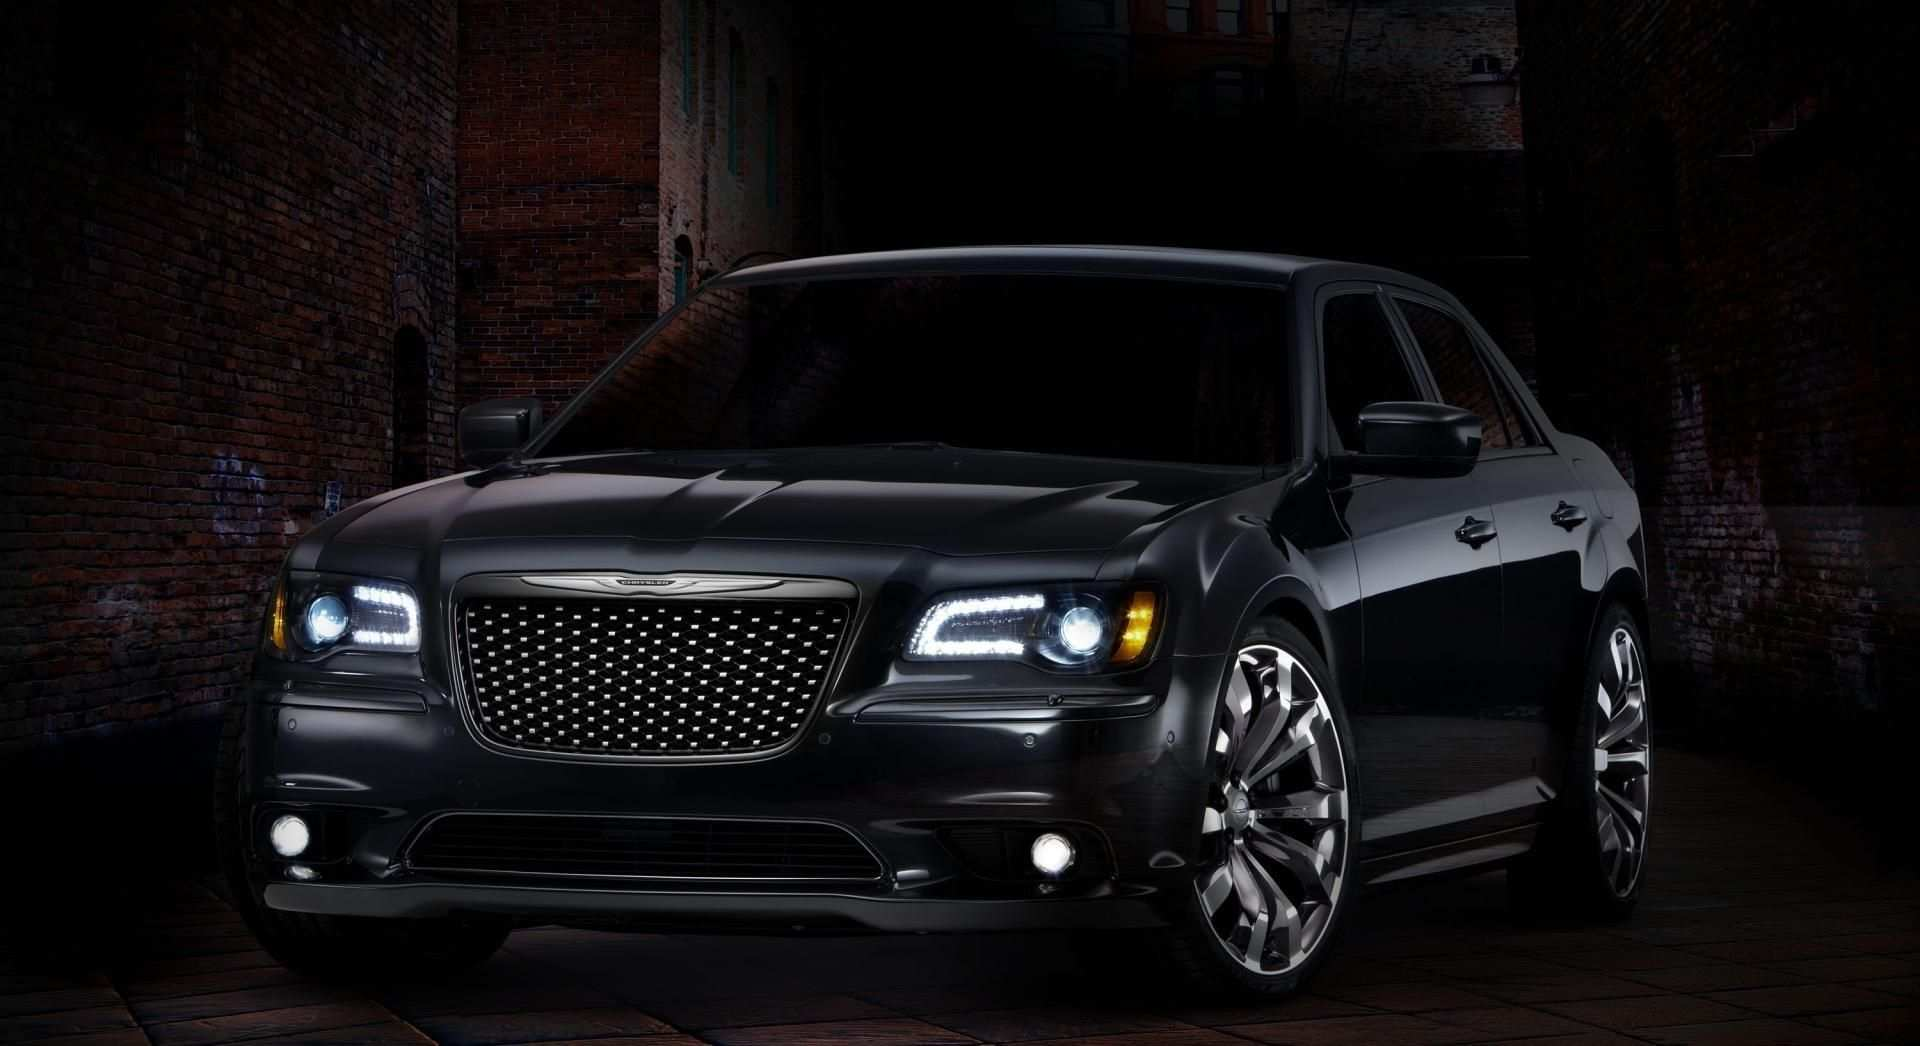 35 The Best 2020 Chrysler Imperial Photos